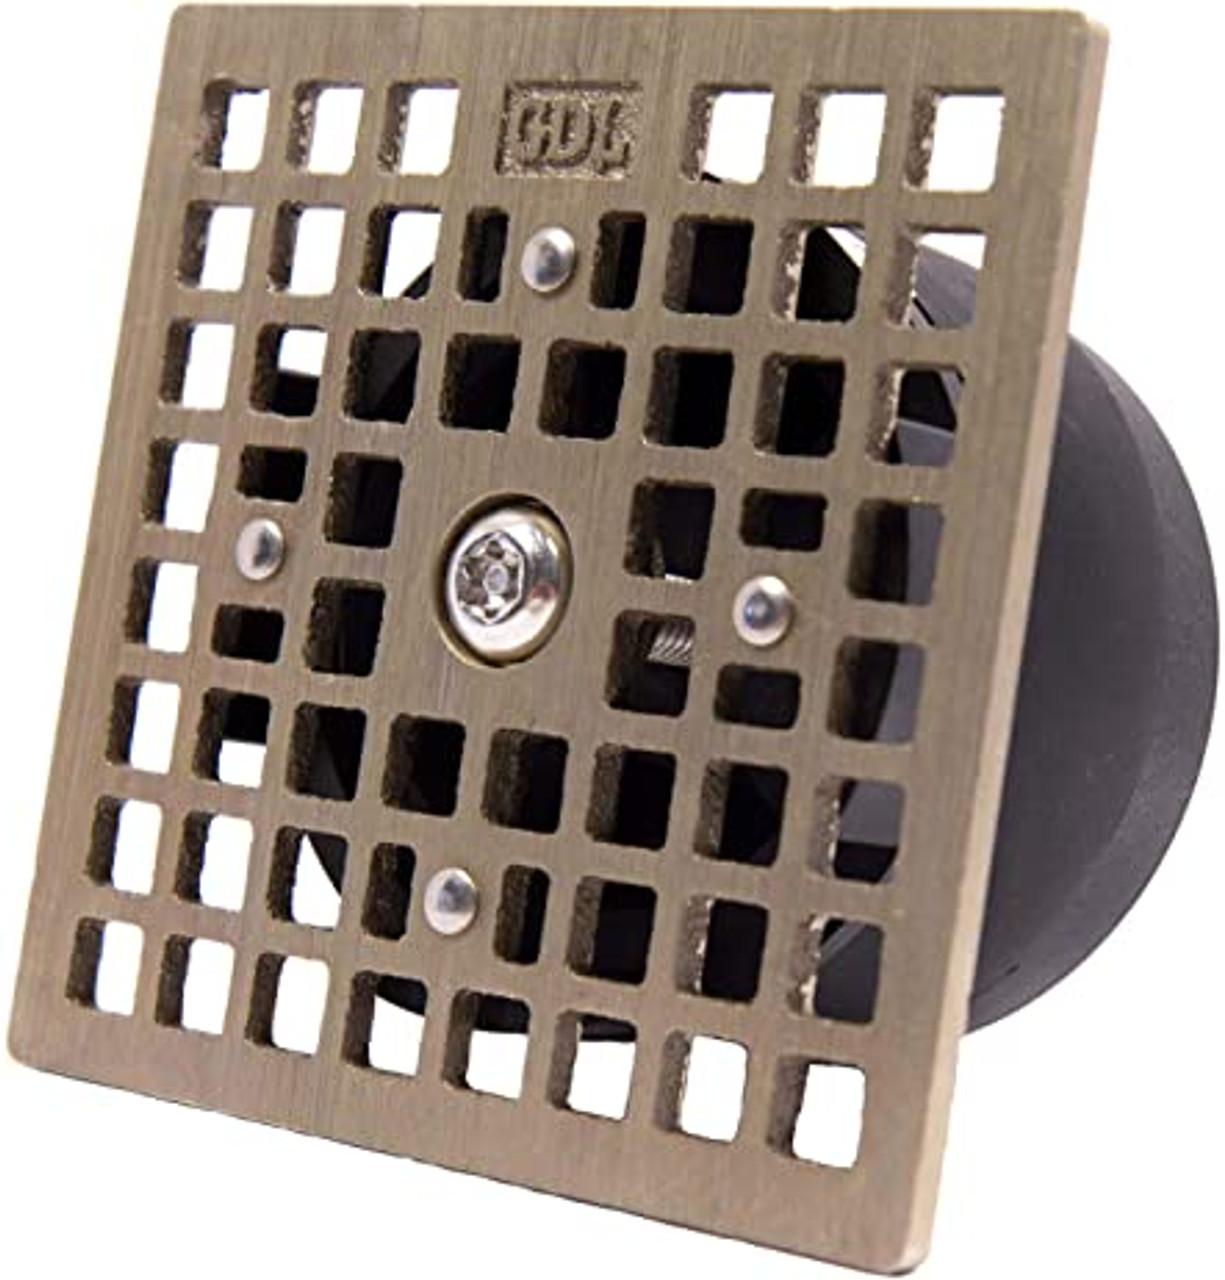 LockOut - Locking Floor Drain Replacement Grate With Odor and Bug Blocking Valve | Blocks Sewer Gas Odors, Bugs, and Locks With A Single Bolt - Square Zurn 5.0""